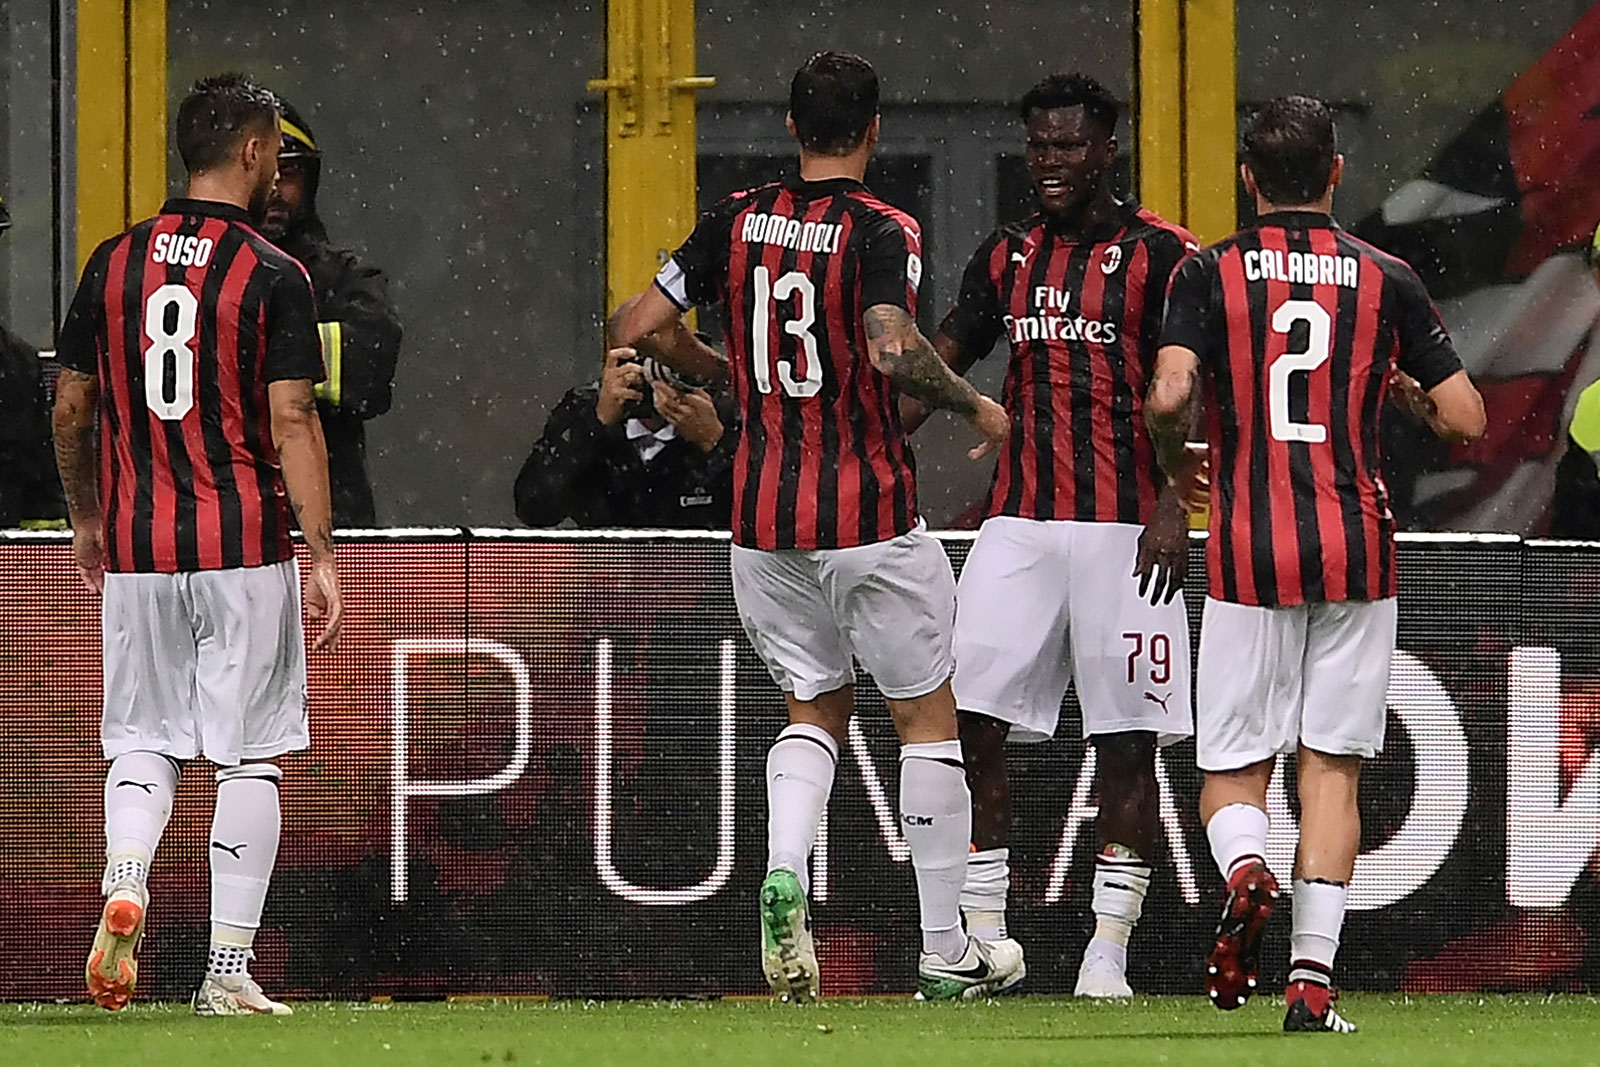 Suso, Alessio Romagnoli, Franck Kessié and Davide Calabria celebrating during Milan-Roma at Stadio San Siro on August 31, 2018. (MARCO BERTORELLO/AFP/Getty Images)